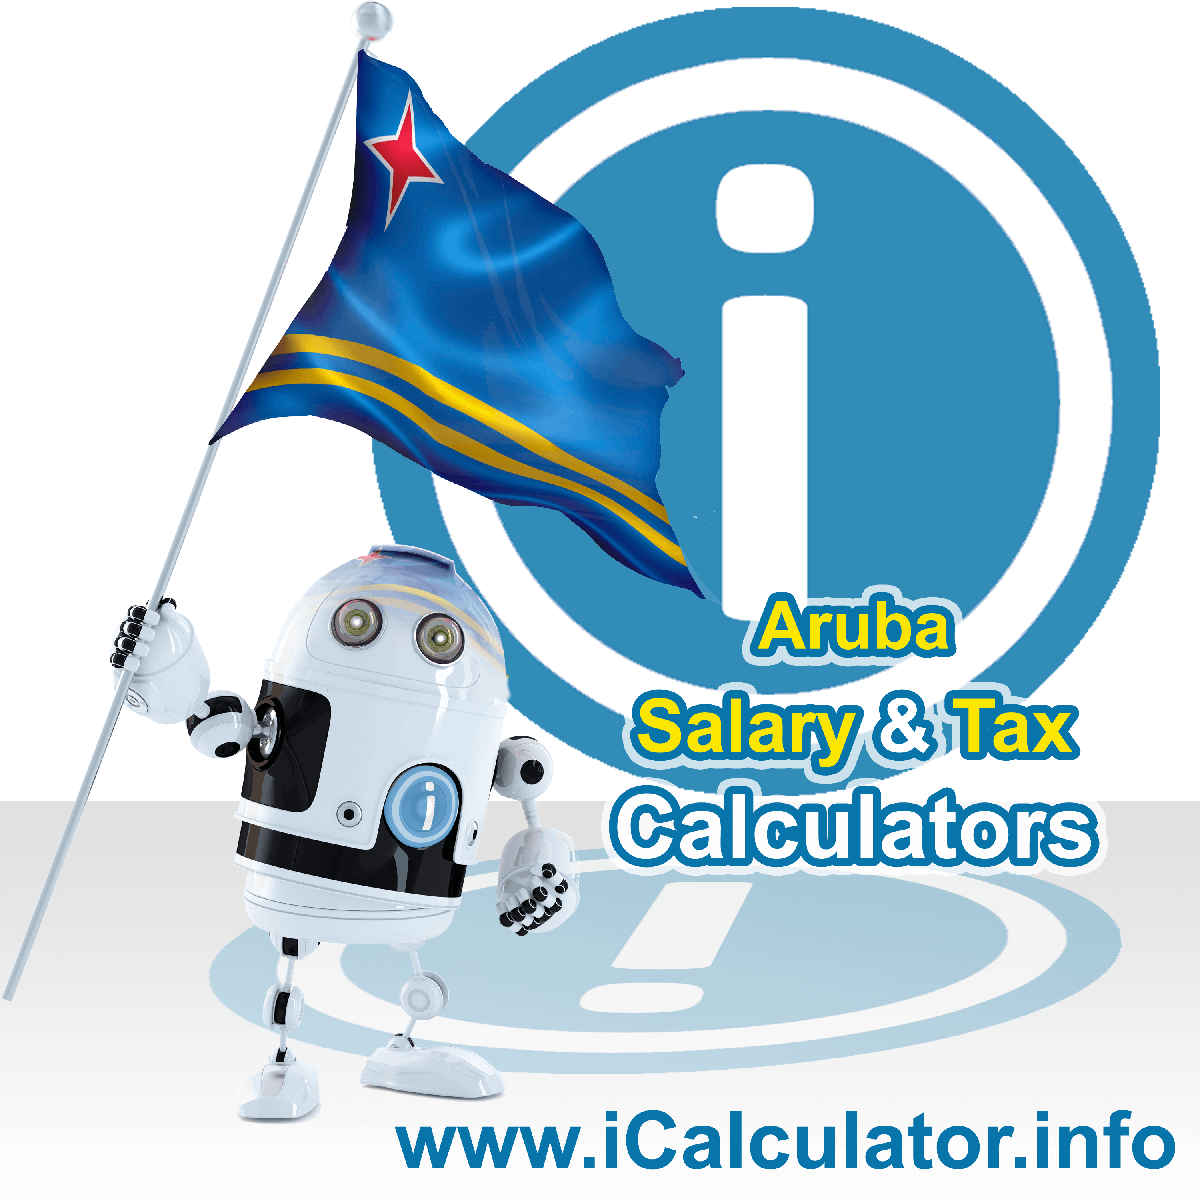 Aruba Tax Calculator. This image shows the Aruba flag and information relating to the tax formula for the Aruba Salary Calculator